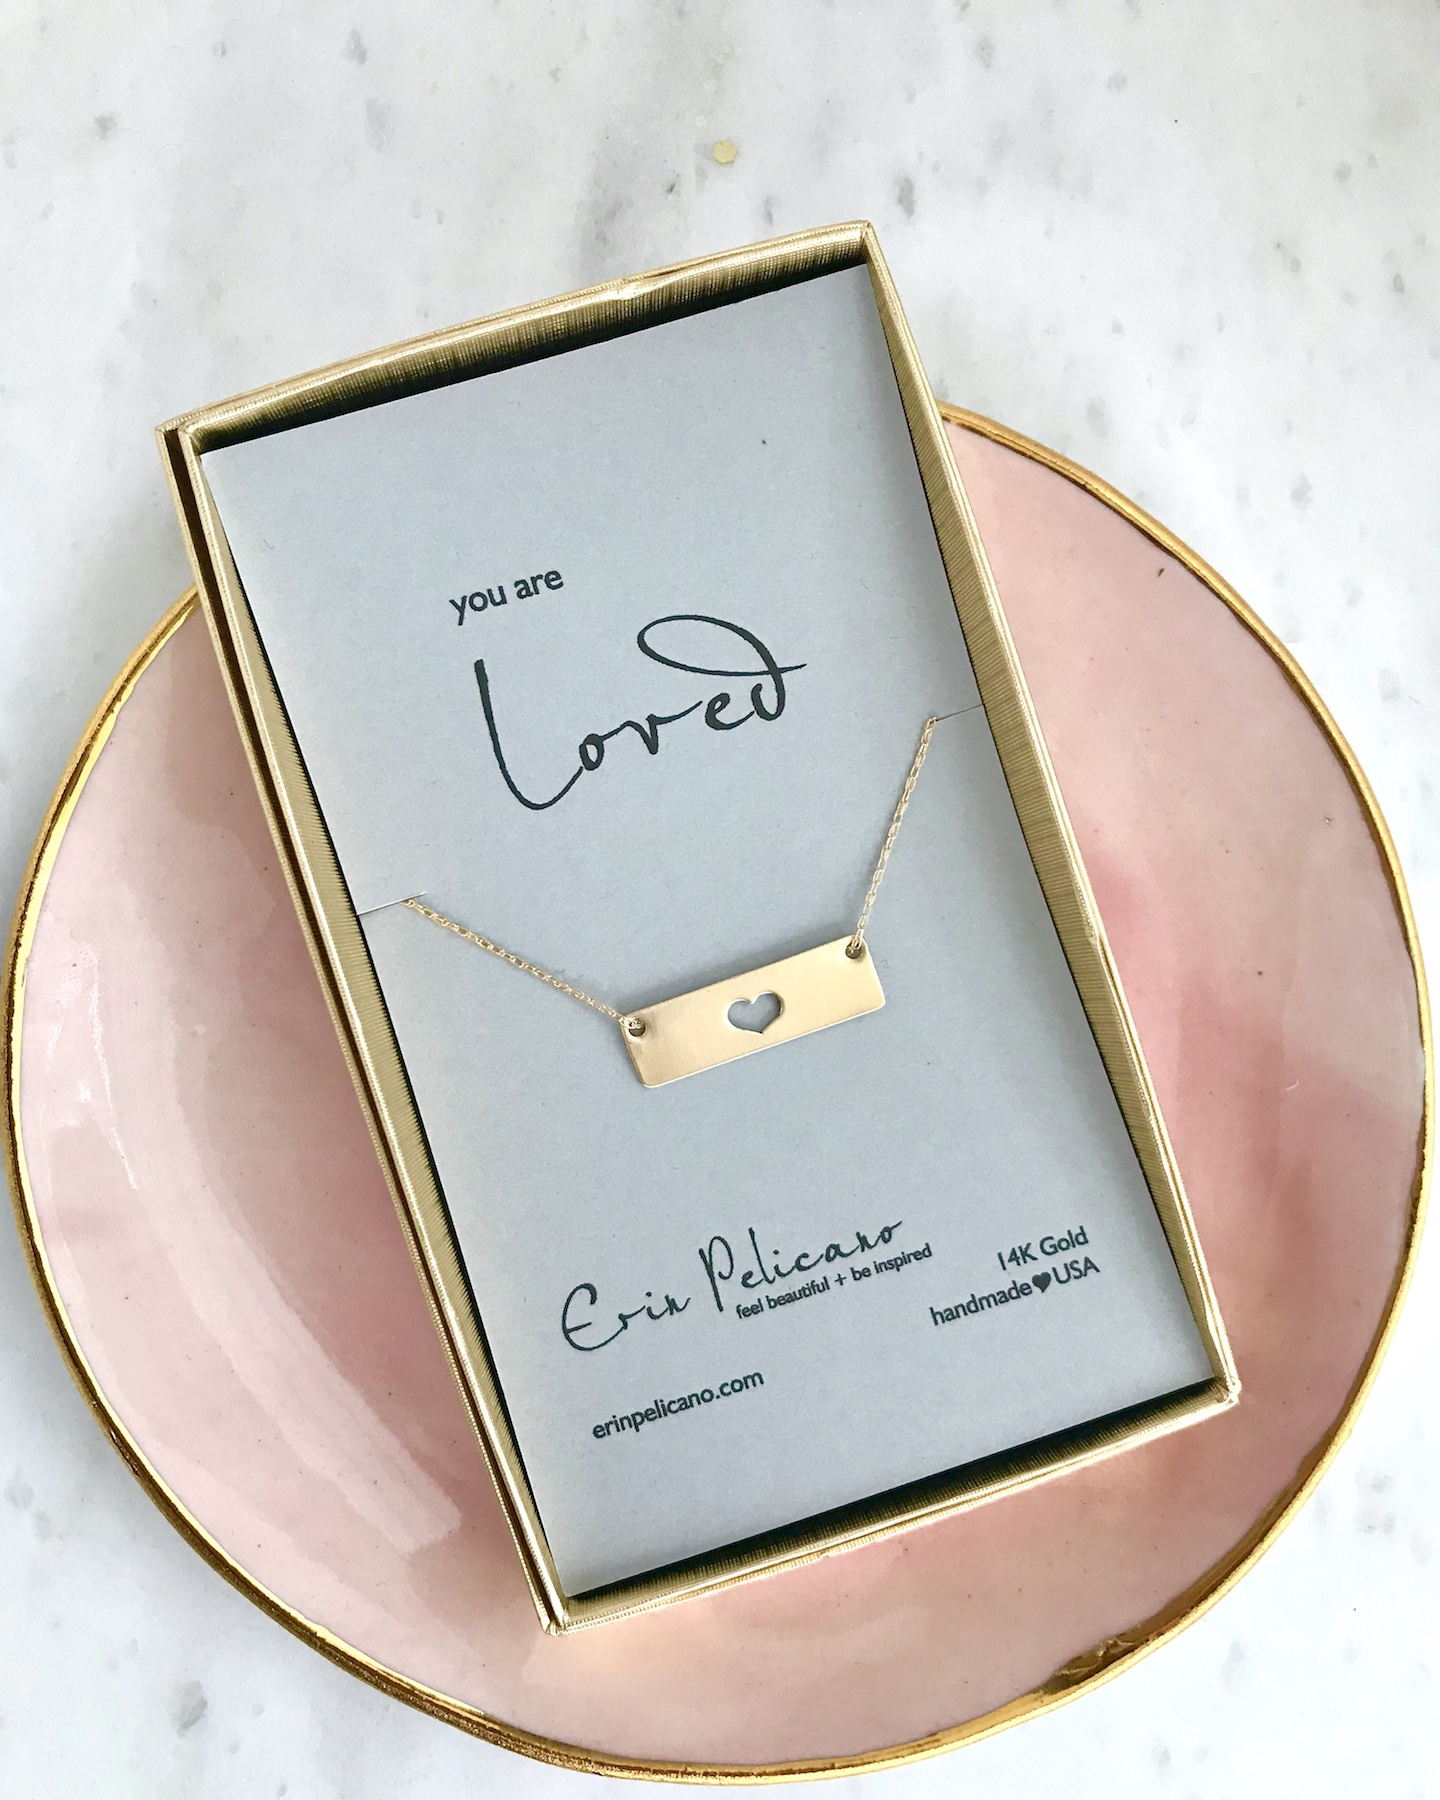 gold bar necklace, gold heart necklace